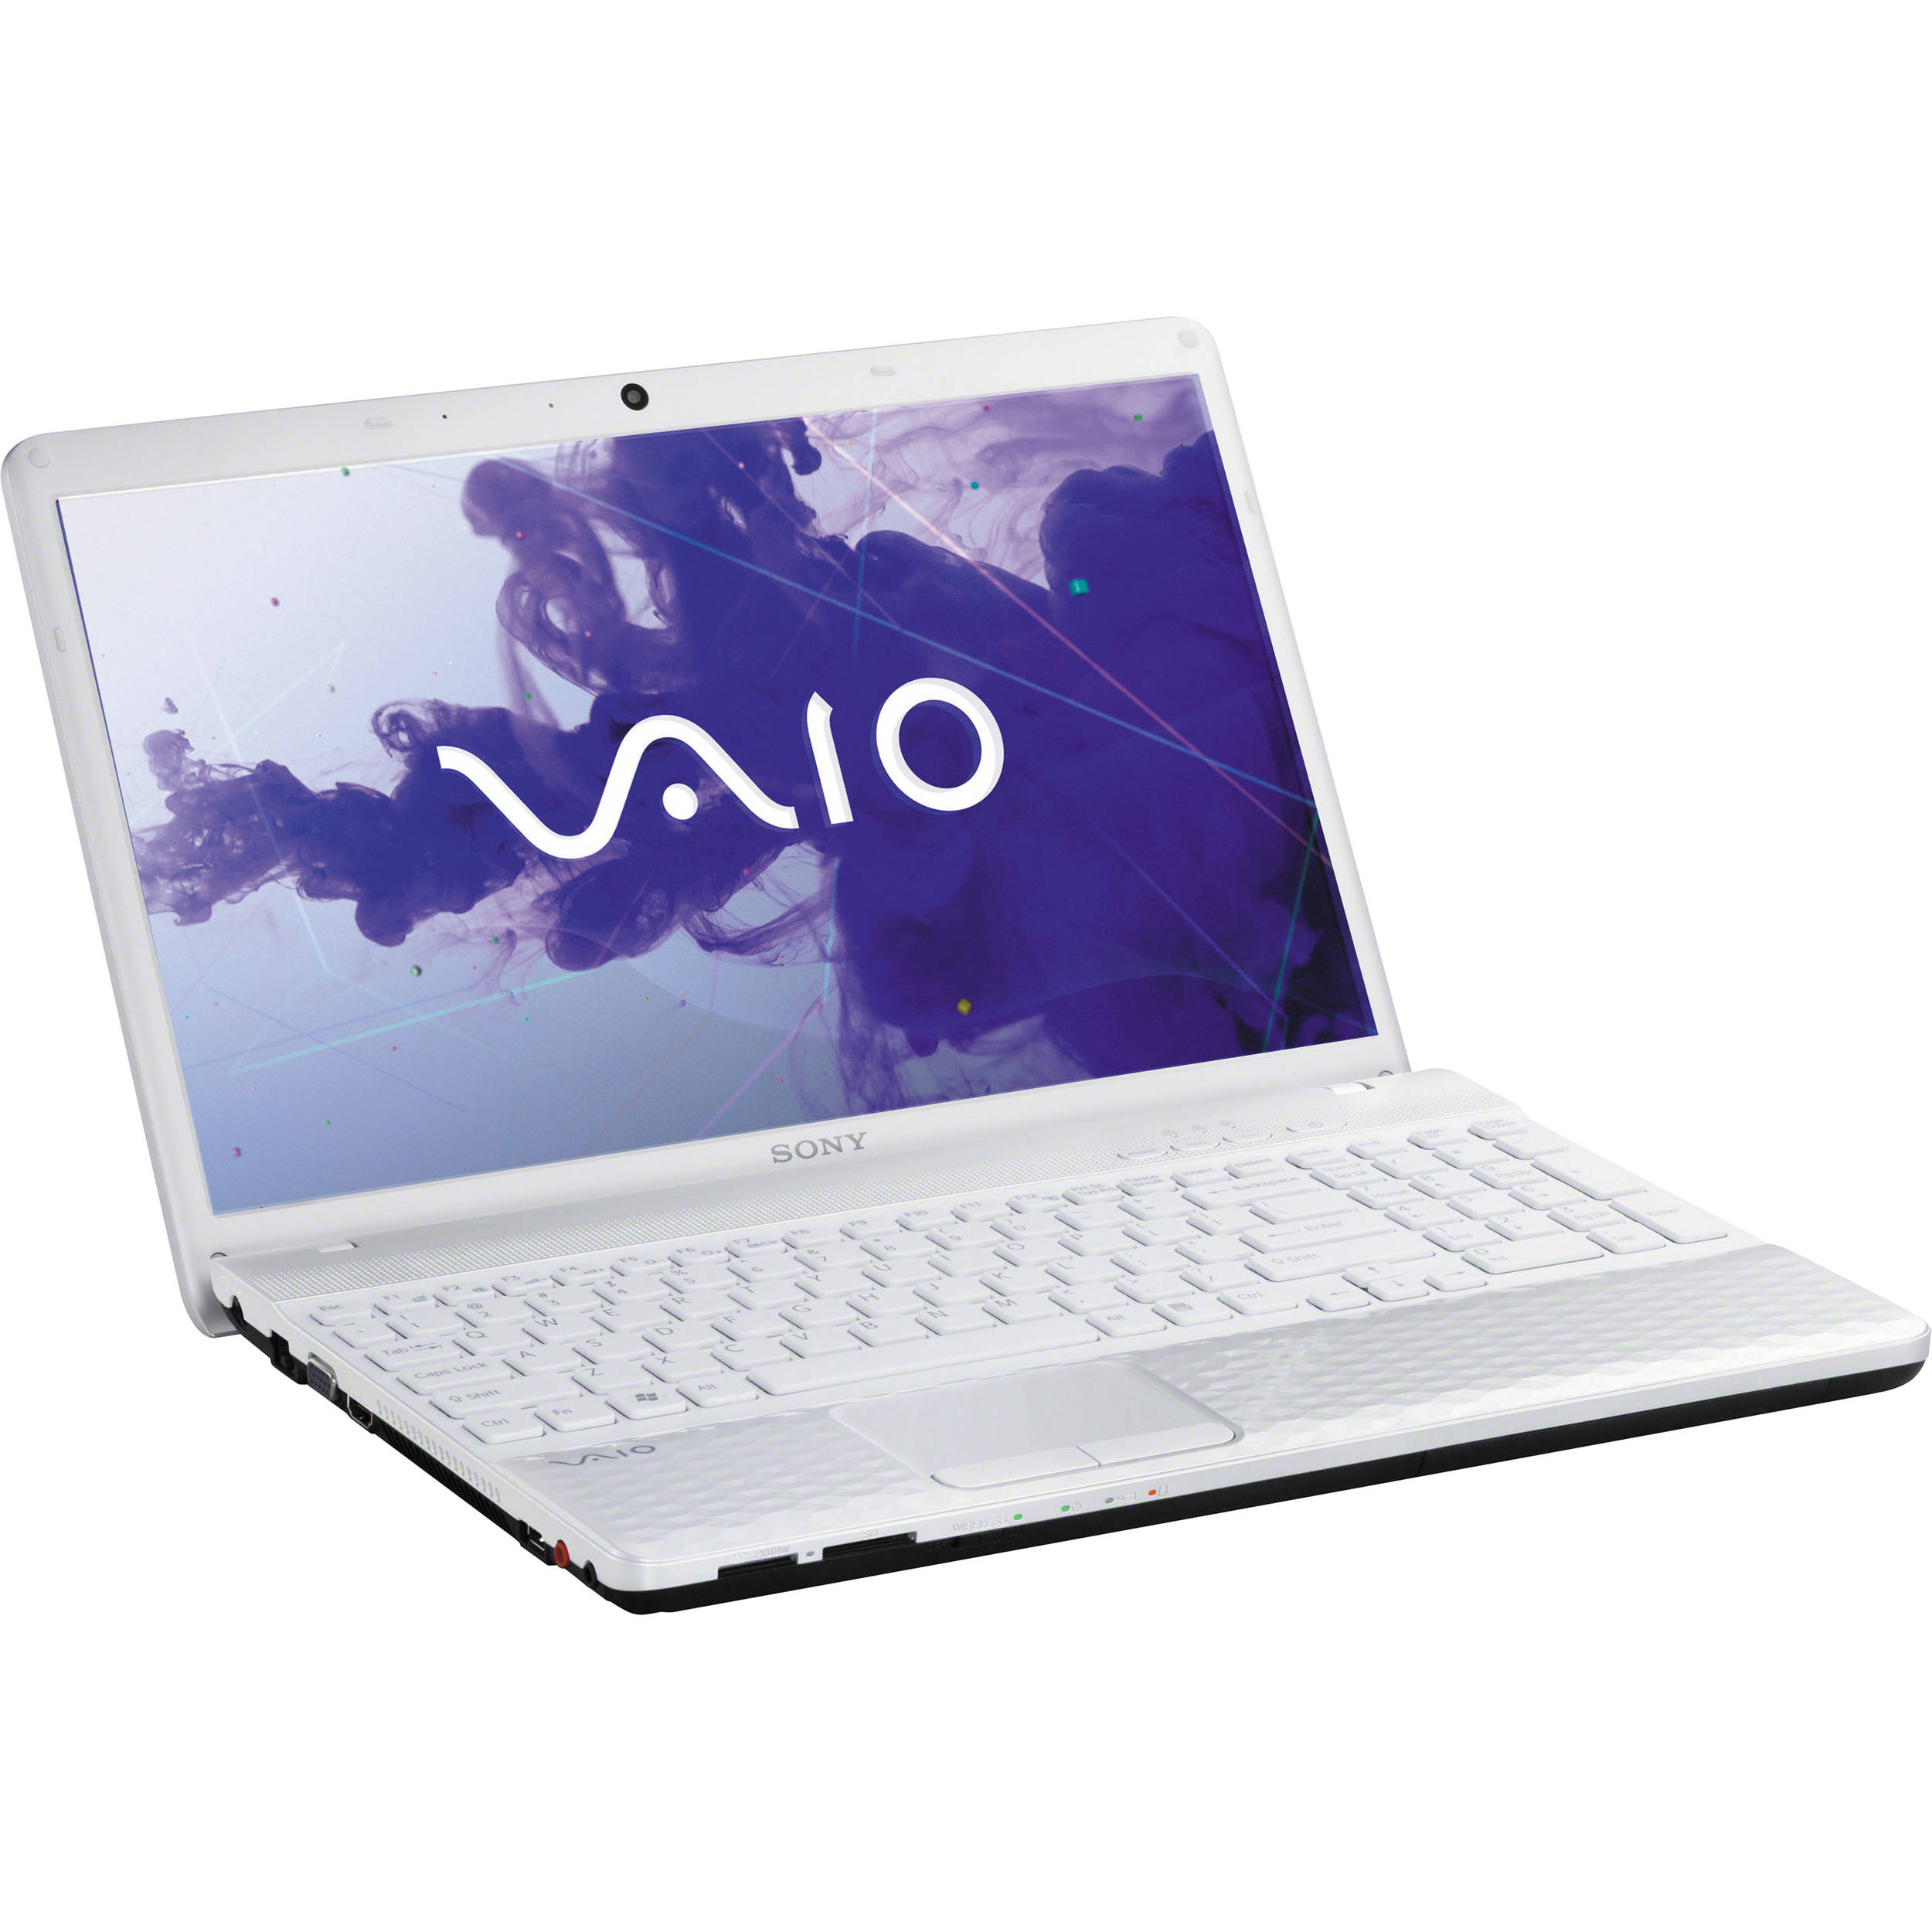 Sony Vaio VPCEH23FX/B Shared Library Download Driver